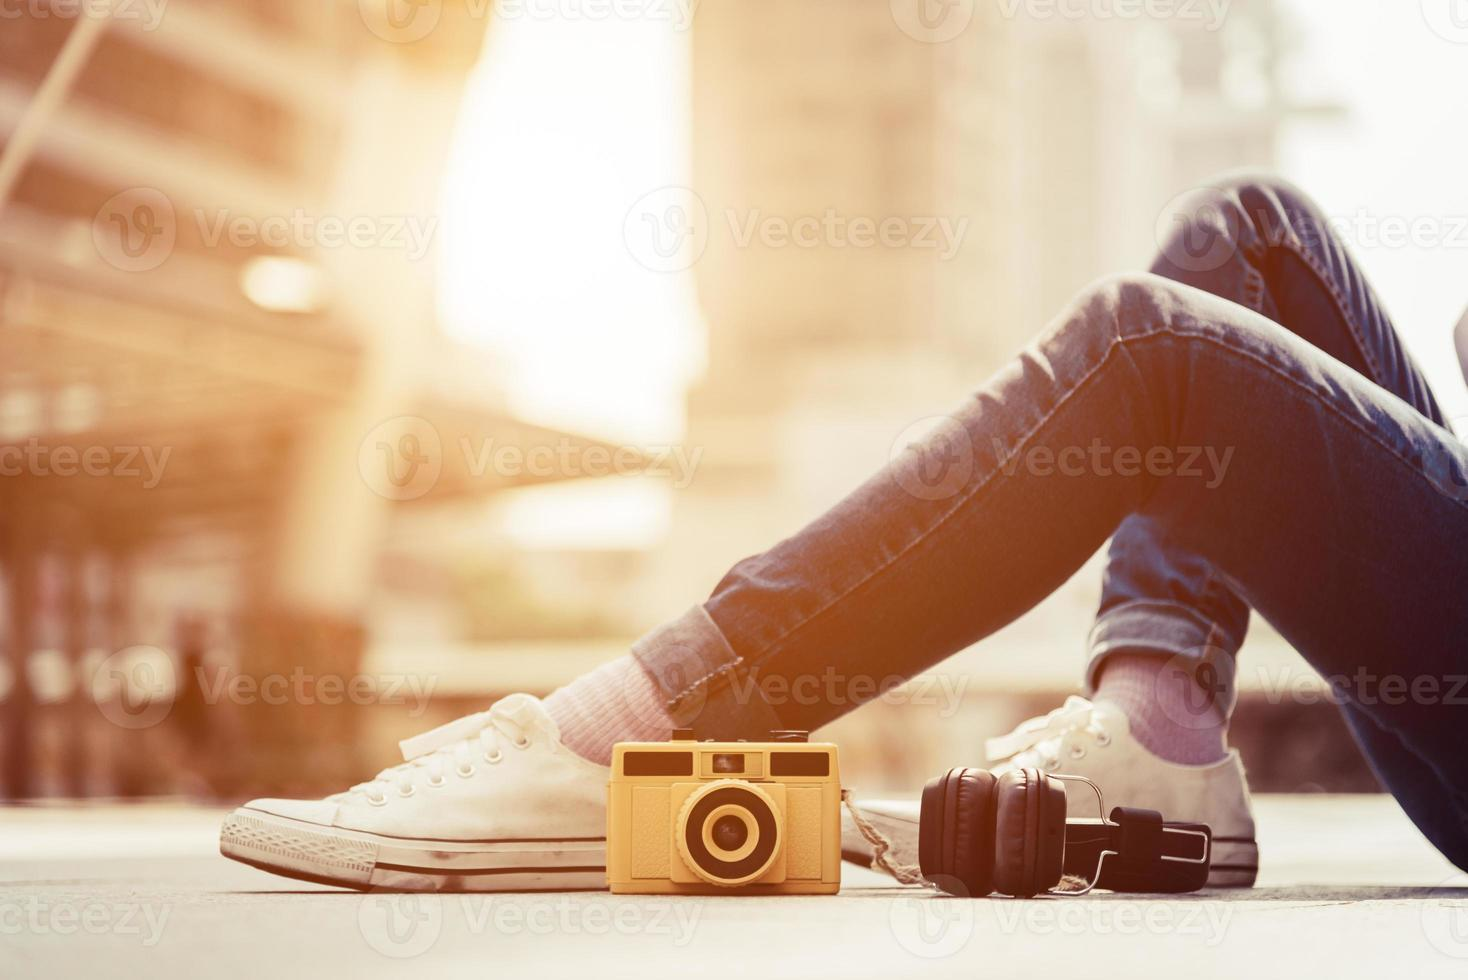 Woman legs wearing jeans and resting and relax in urban photo